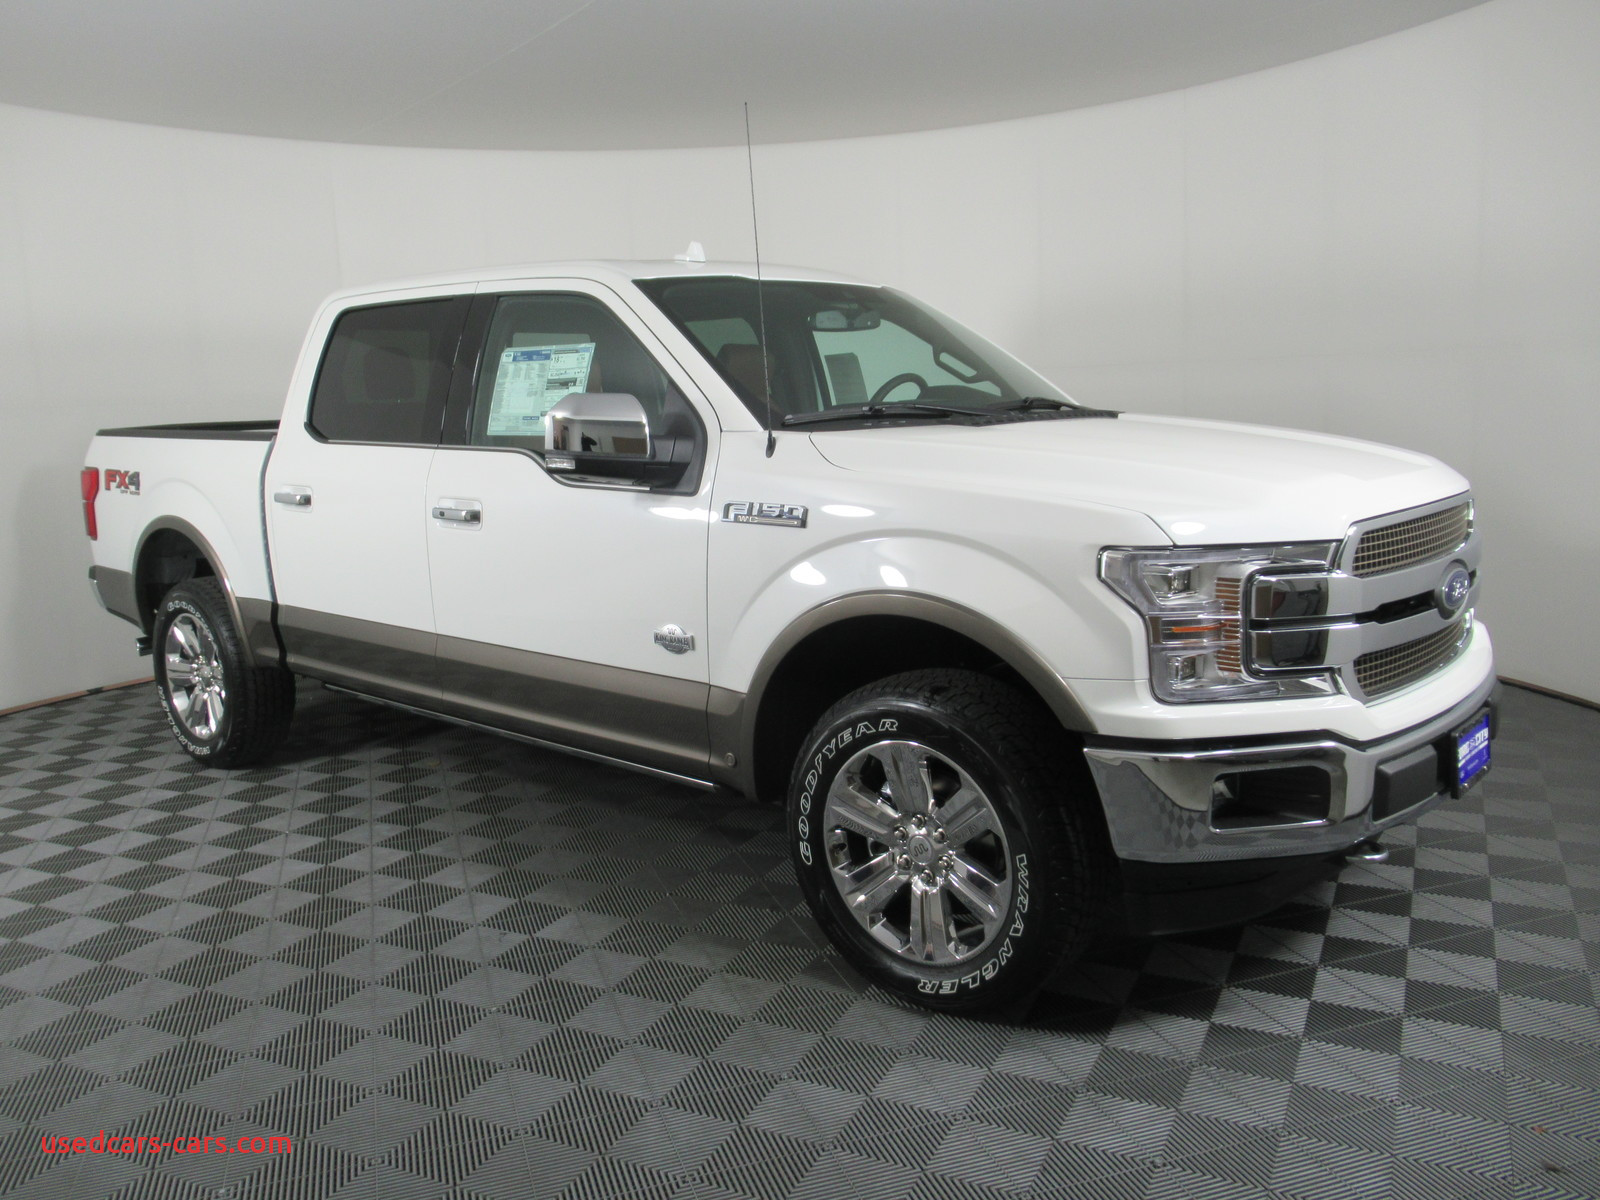 Ford 2020 King Ranch Elegant New 2020 ford F 150 King Ranch 4wd Supercrew 5 5 Box Crew Cab Pickup